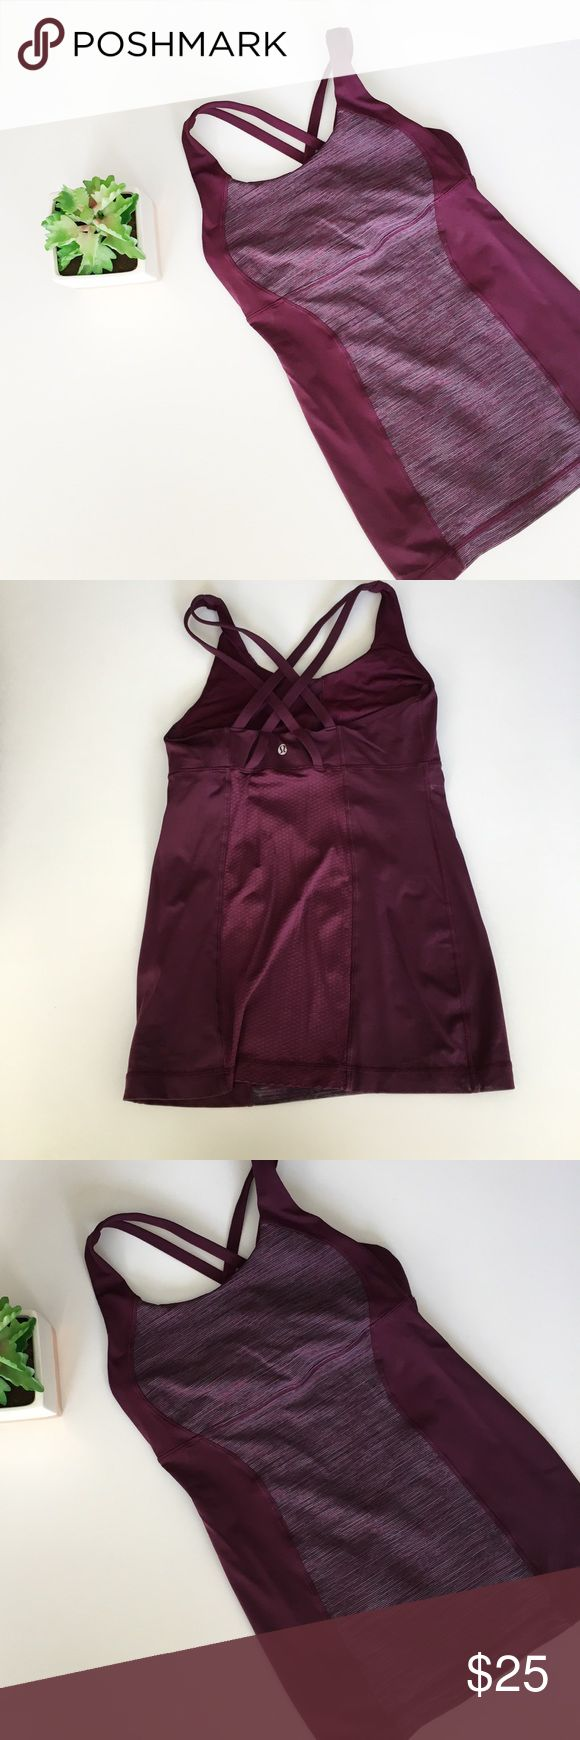 Lululemon Purple Cross Back Workout Tank Lululemon cross strappy back tank size approx 6. No size dot or padding. Length is 24 inches, bust 14 inches. No stains or holes, smoke and pet free home! Offers welcomed! lululemon athletica Tops Tank Tops